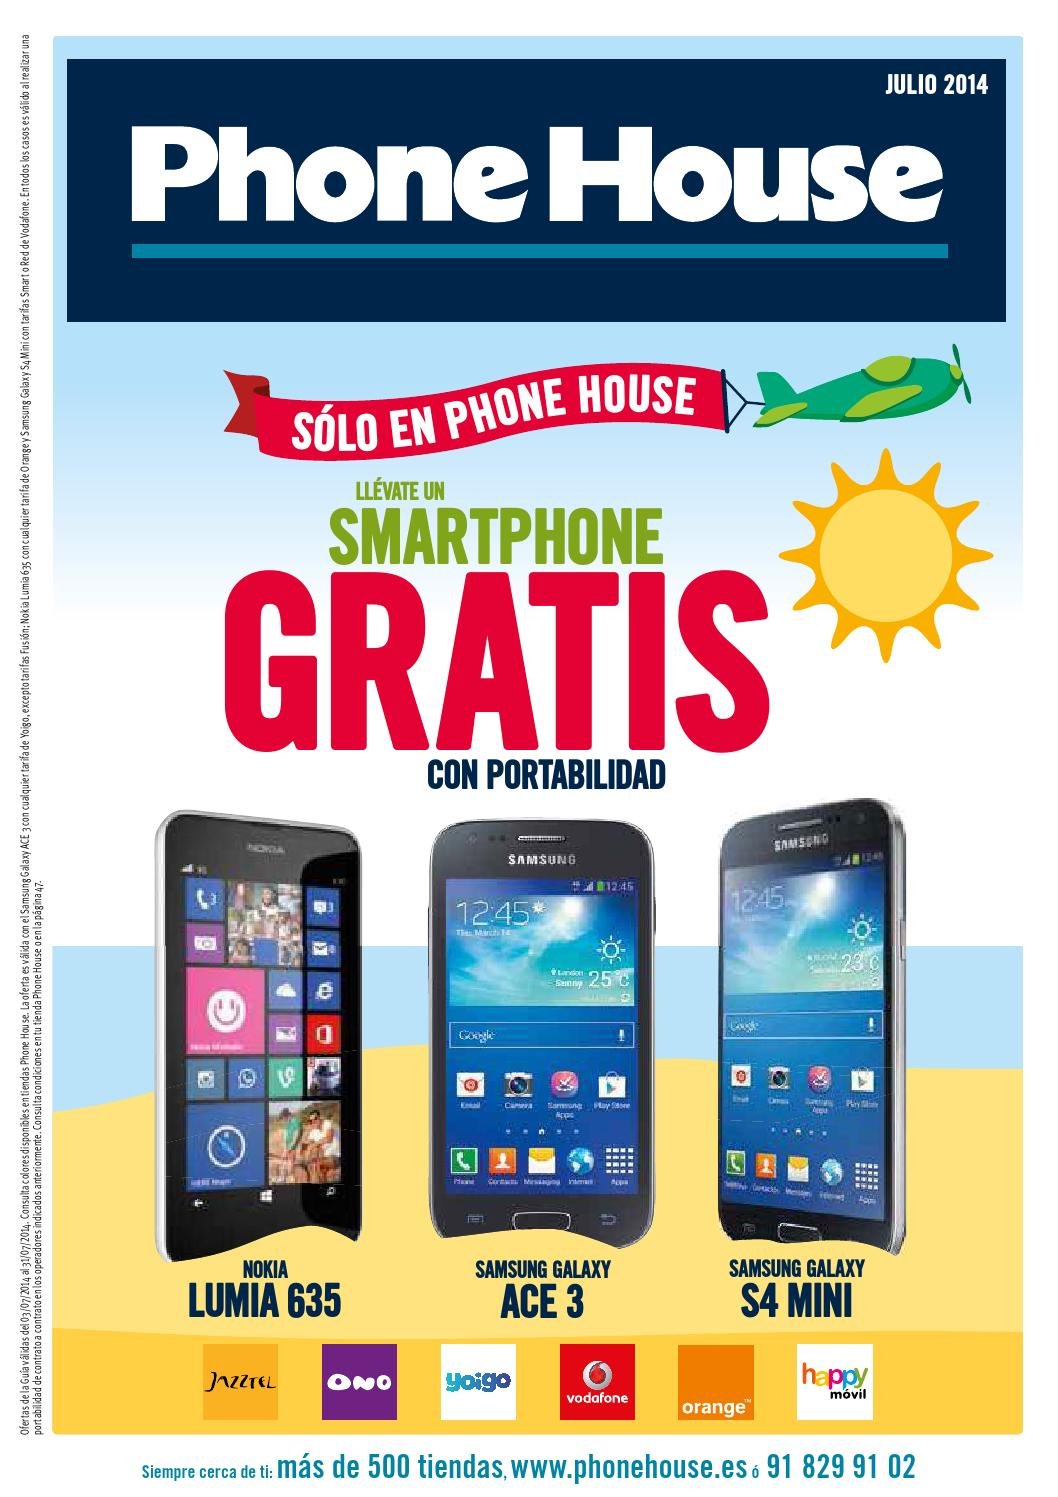 Phone House Moviles Libres Catalogo Catalogo Phone House By Misfolletos Misfolletos Issuu